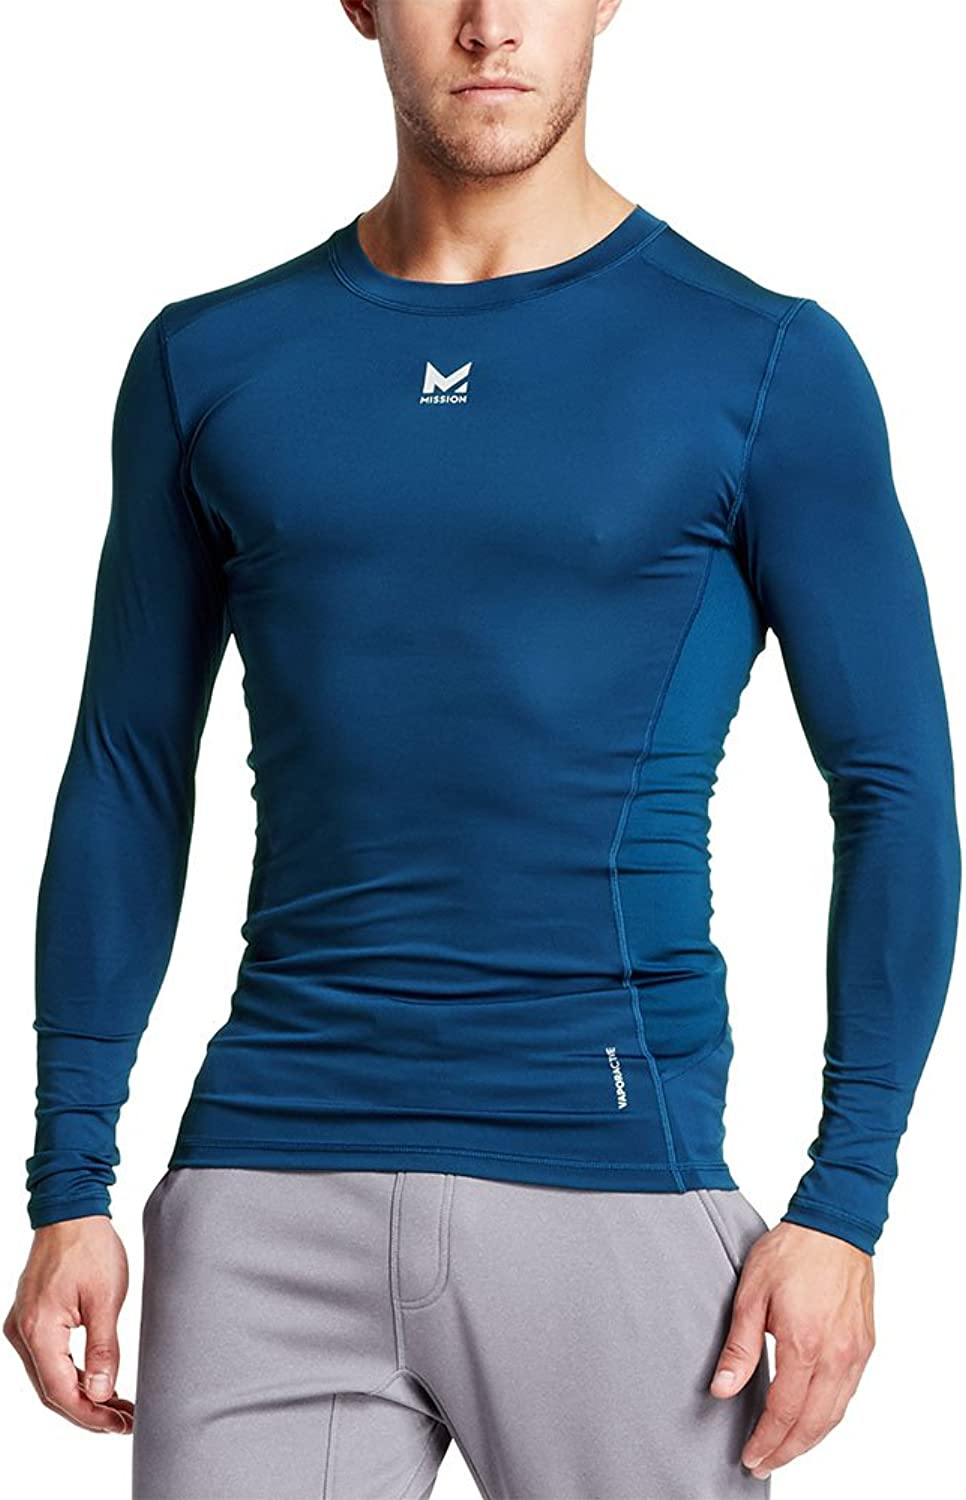 Mission Men's VaporActive Voltage Long Sleeve Compression Shirt